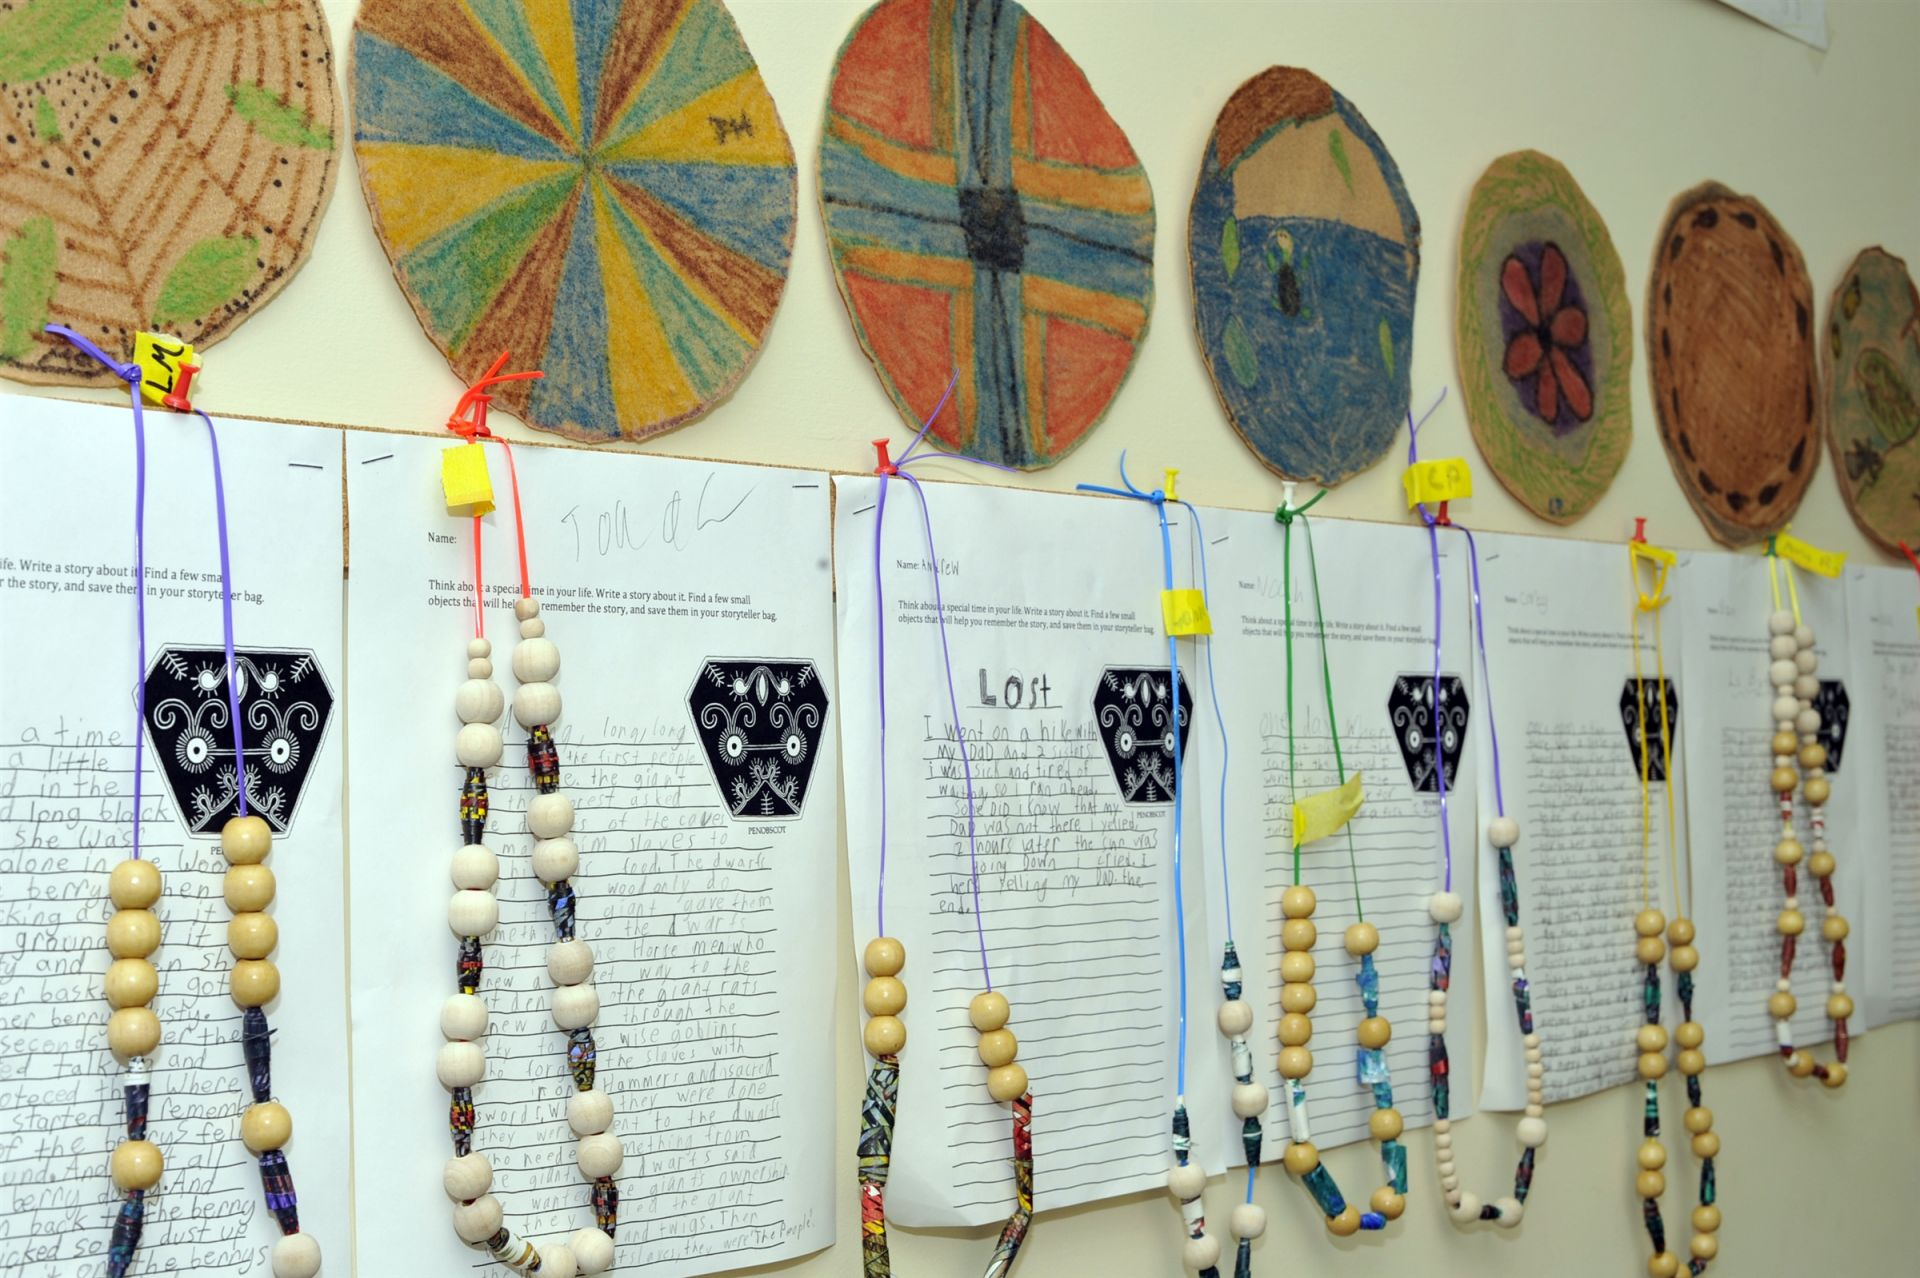 Fourth grade has created maps of mythical places in conjunction with their exploration of Marco Polo and the Silk Road. Third grade has made story teller bags and story beads as part of their study of the Native Americans of the Northeast Woodlands. Second grade has created Inti sun disks patterned after images created by the ancient Incas in South America. First grade has made ring toss games as they have been reading The Rough-Face Girl, a Native American Cinderella story.